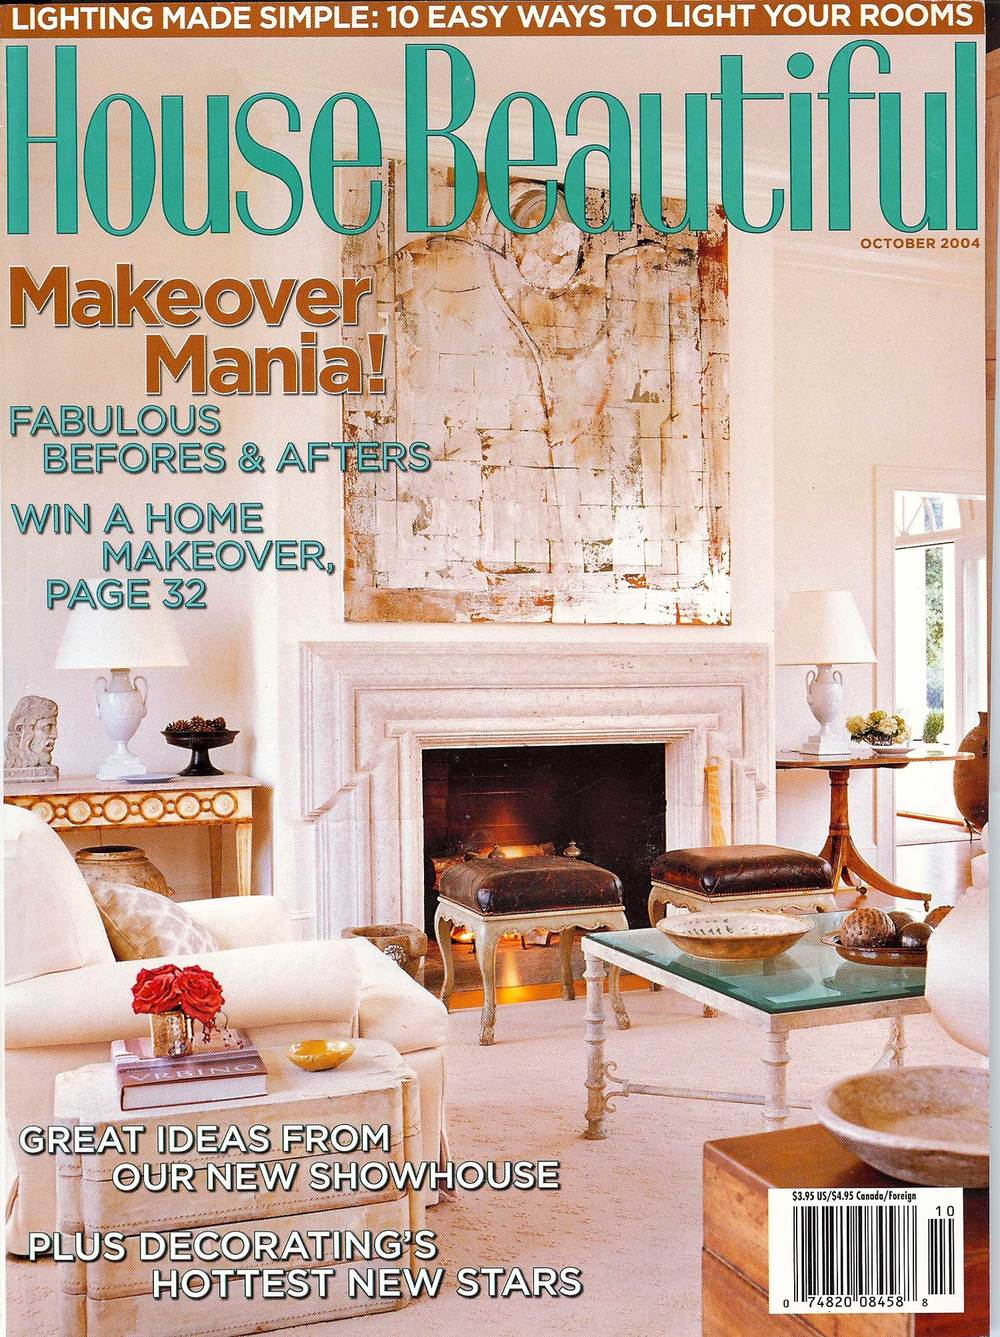 House-Beautiful-Oct-2004-Cover.jpg